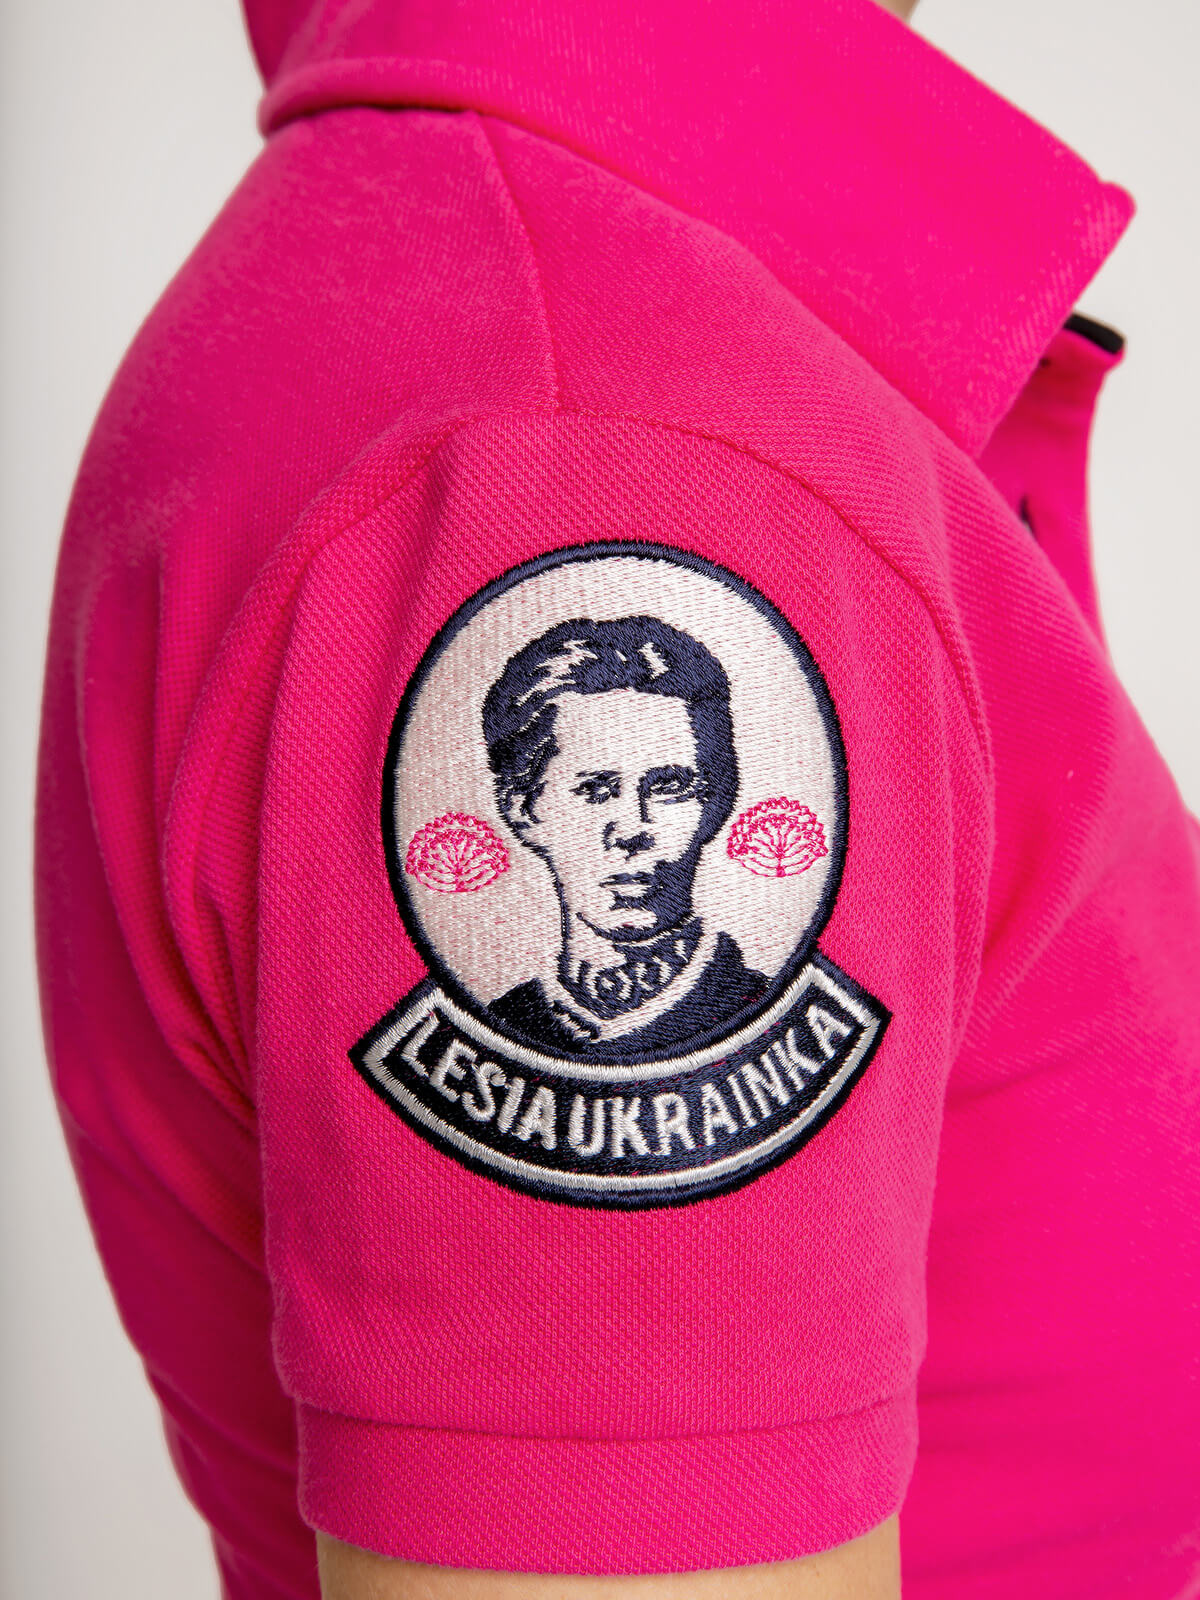 Women's Polo Shirt Lesia Ukrainka. Color pink.  Size worn by the model: S.